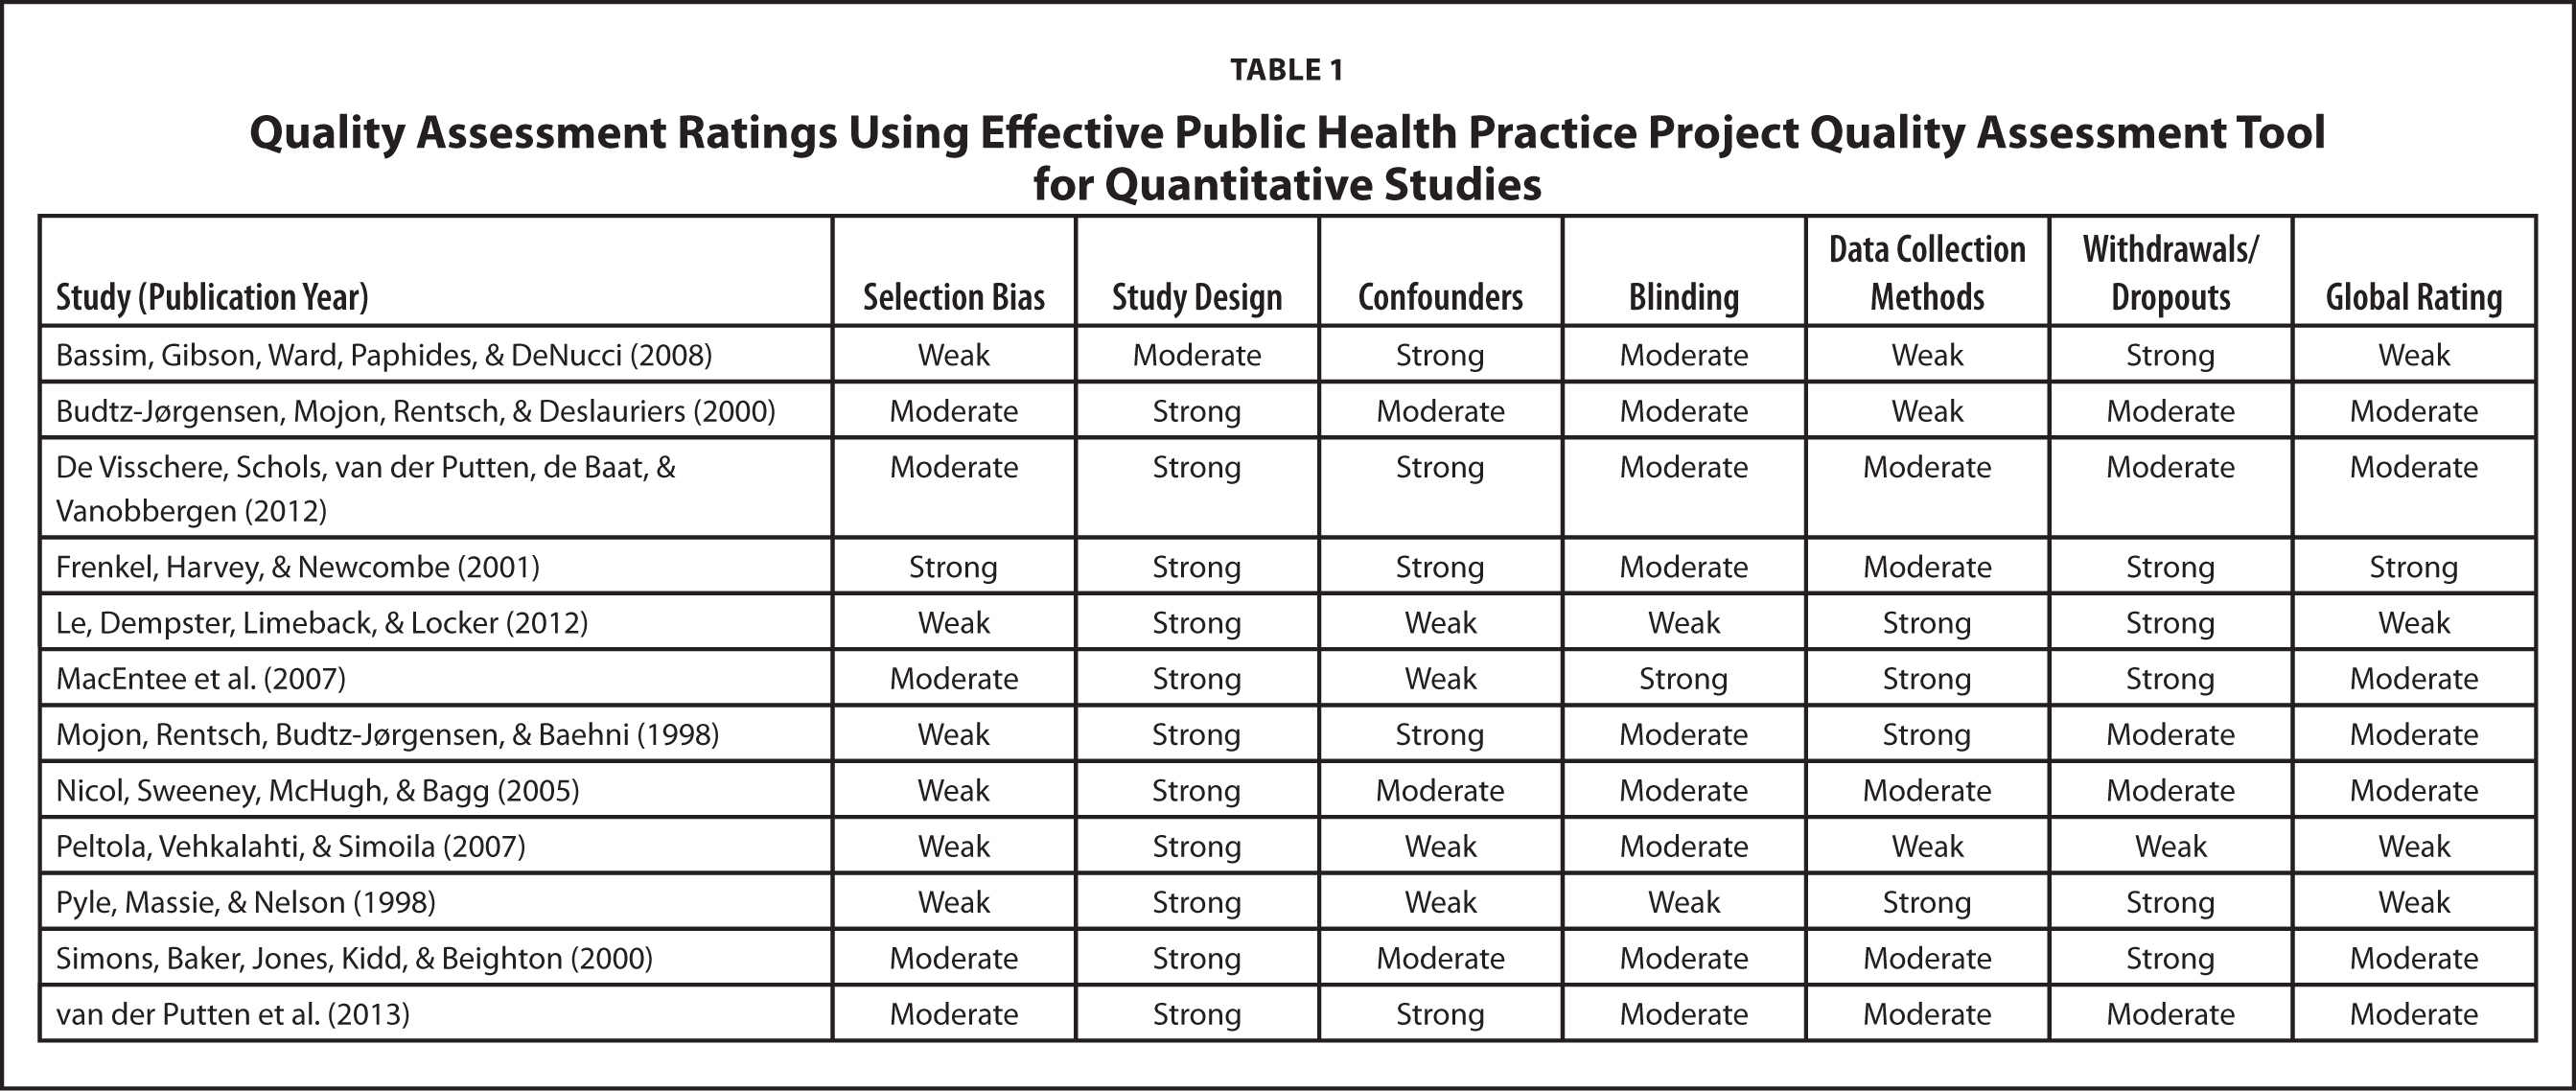 Quality Assessment Ratings Using Effective Public Health Practice Project Quality Assessment Tool for Quantitative Studies